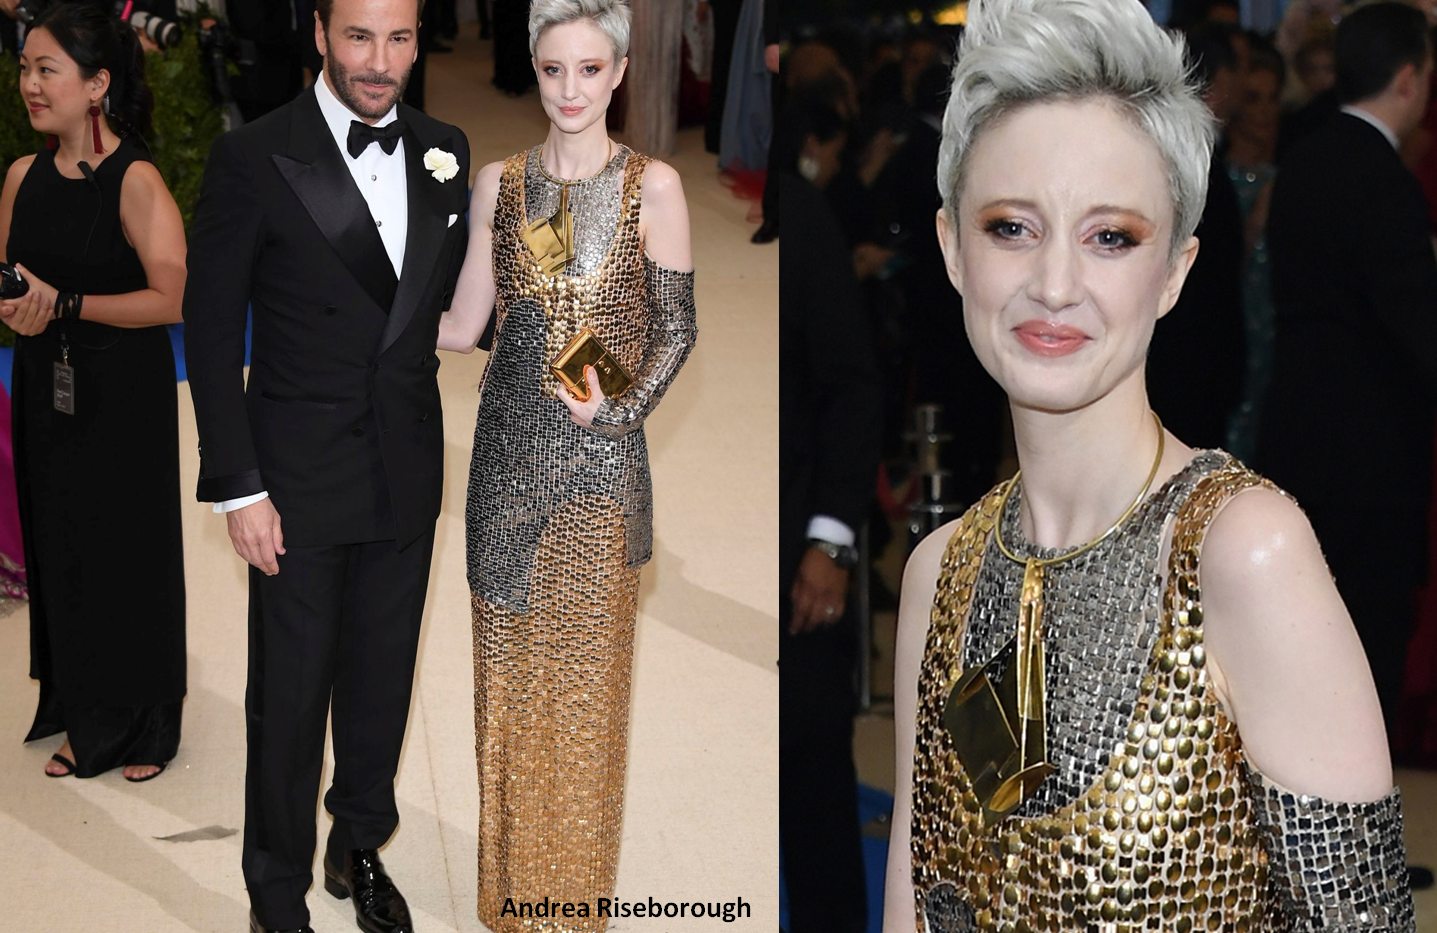 Andrea Riseborough at the MET GALA 2017 wearing silver/gold gown - Project for TOM FORD - pattern making using OPTITEX - dressmaking - fitting / tailoring - managing - garment technology consult